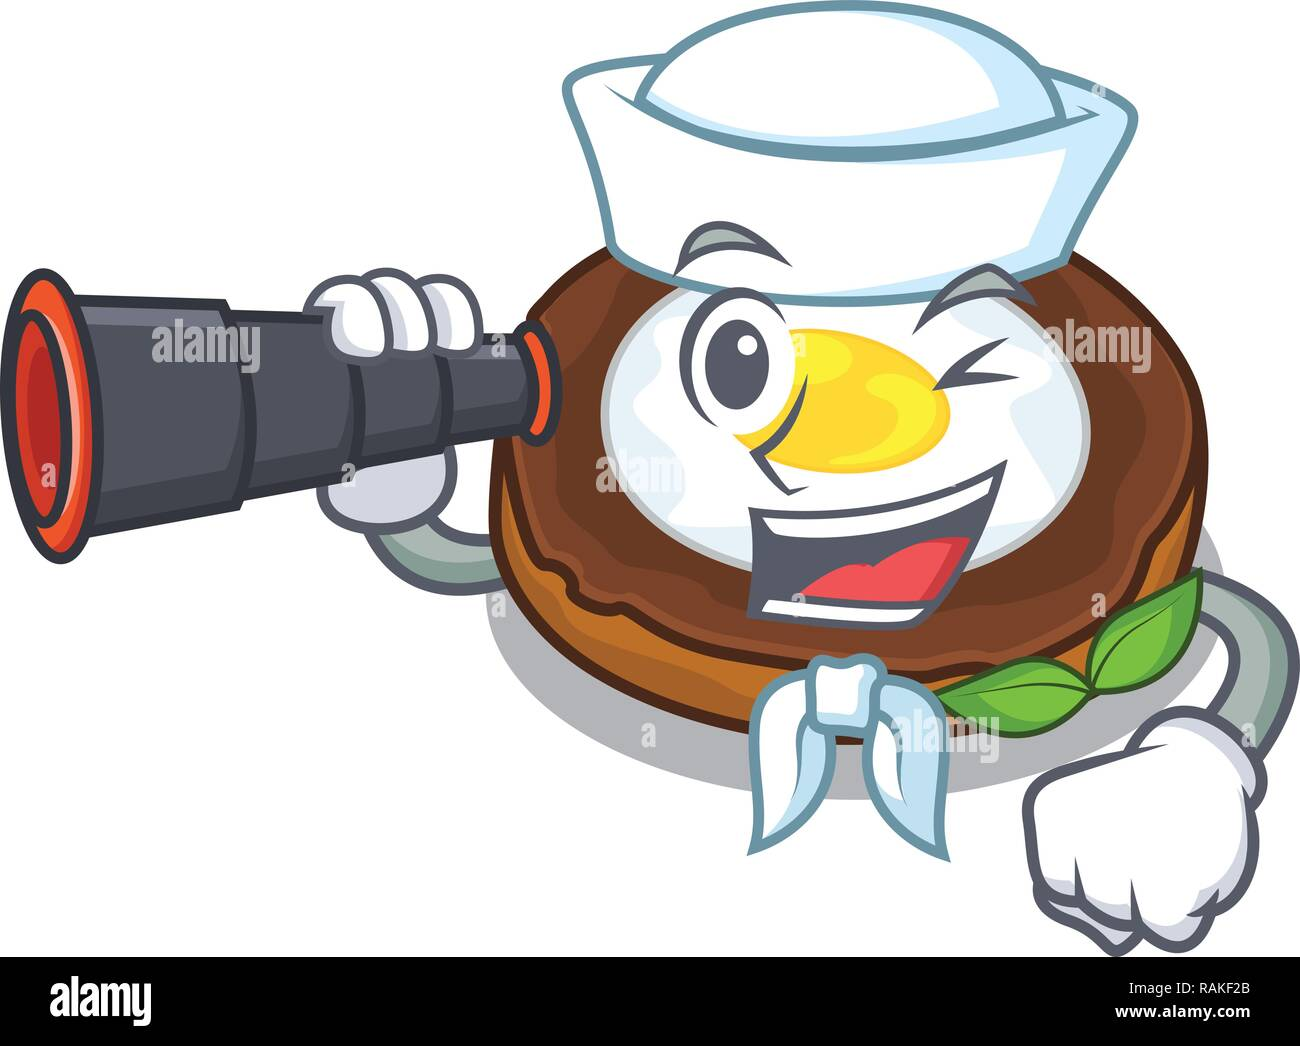 Sailor with binocular egg scotch on character wood boards - Stock Vector